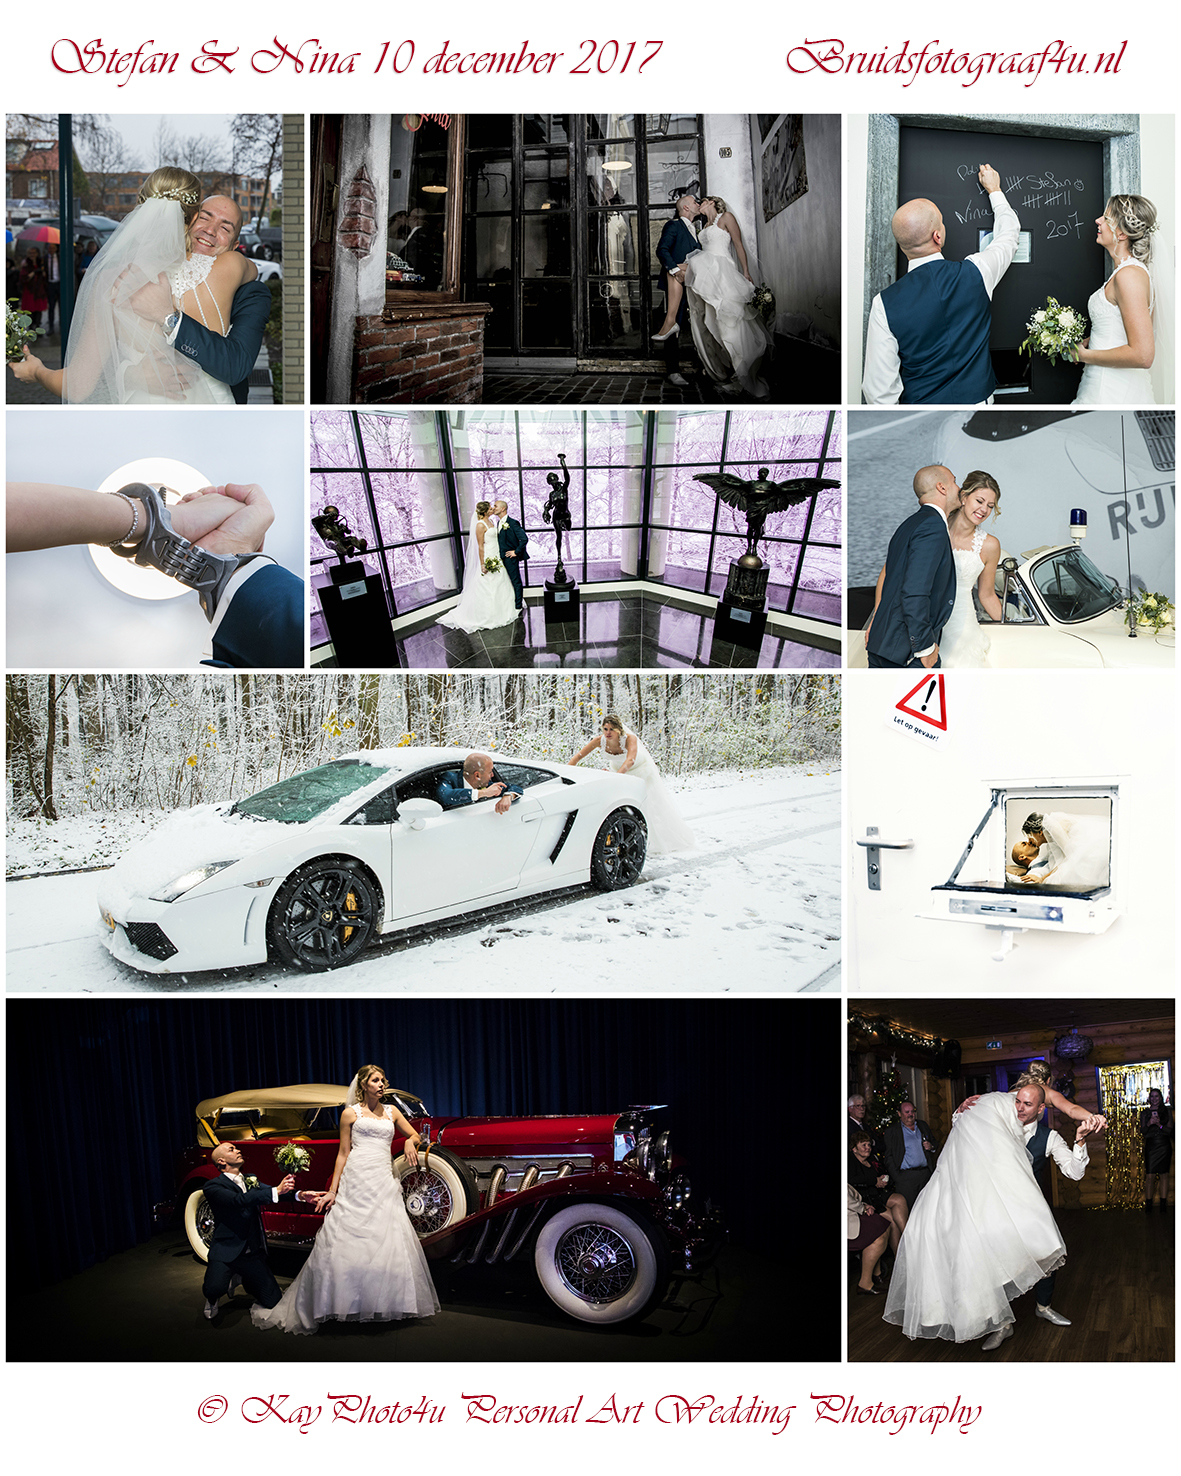 KayPhoto4u, Louwman, louwman museum, trouwfoto's politiebureau, politiebureau, bruidsreportage politie, bruidsreportage politiebureau, Wedding Snow, Trouwen sneeuw, Trouwpaar sneeuw, trouwen in de winter, winter wedding, snow wedding, snow, sneeuw, winter huwelijk, trouwen winter, trouwen december,